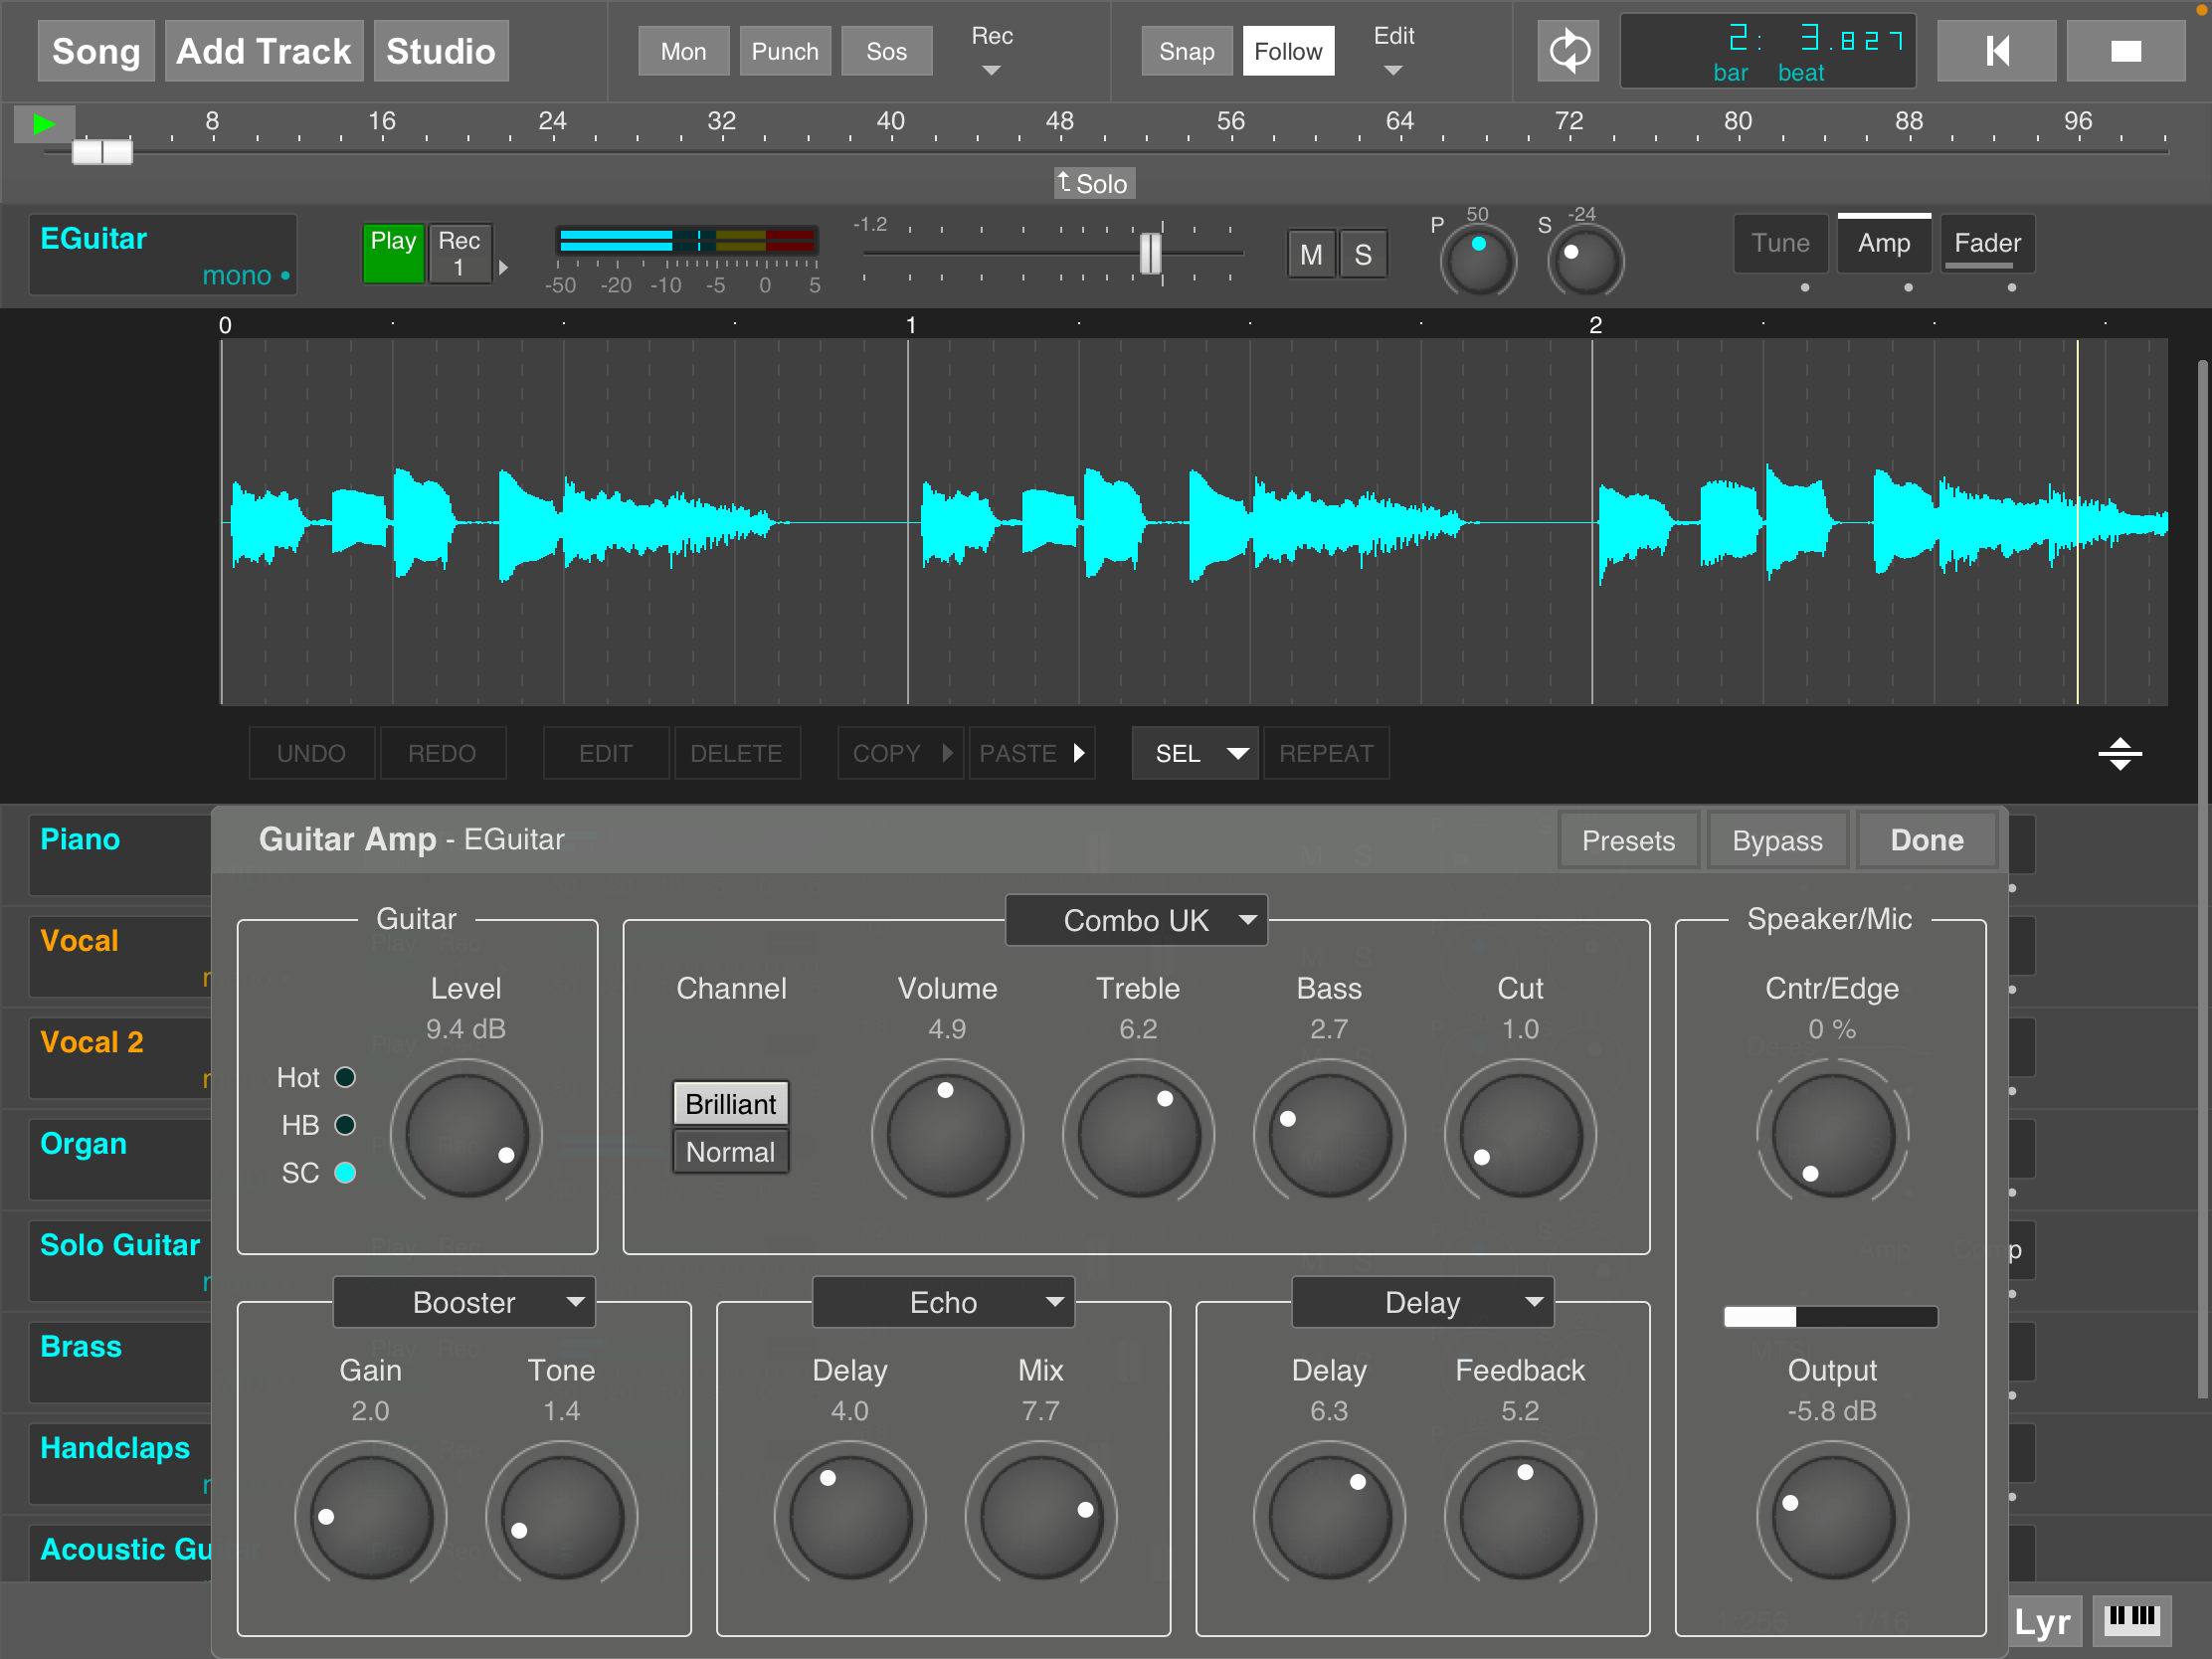 MultitrackStudio for iPad - Guitar Amp effect